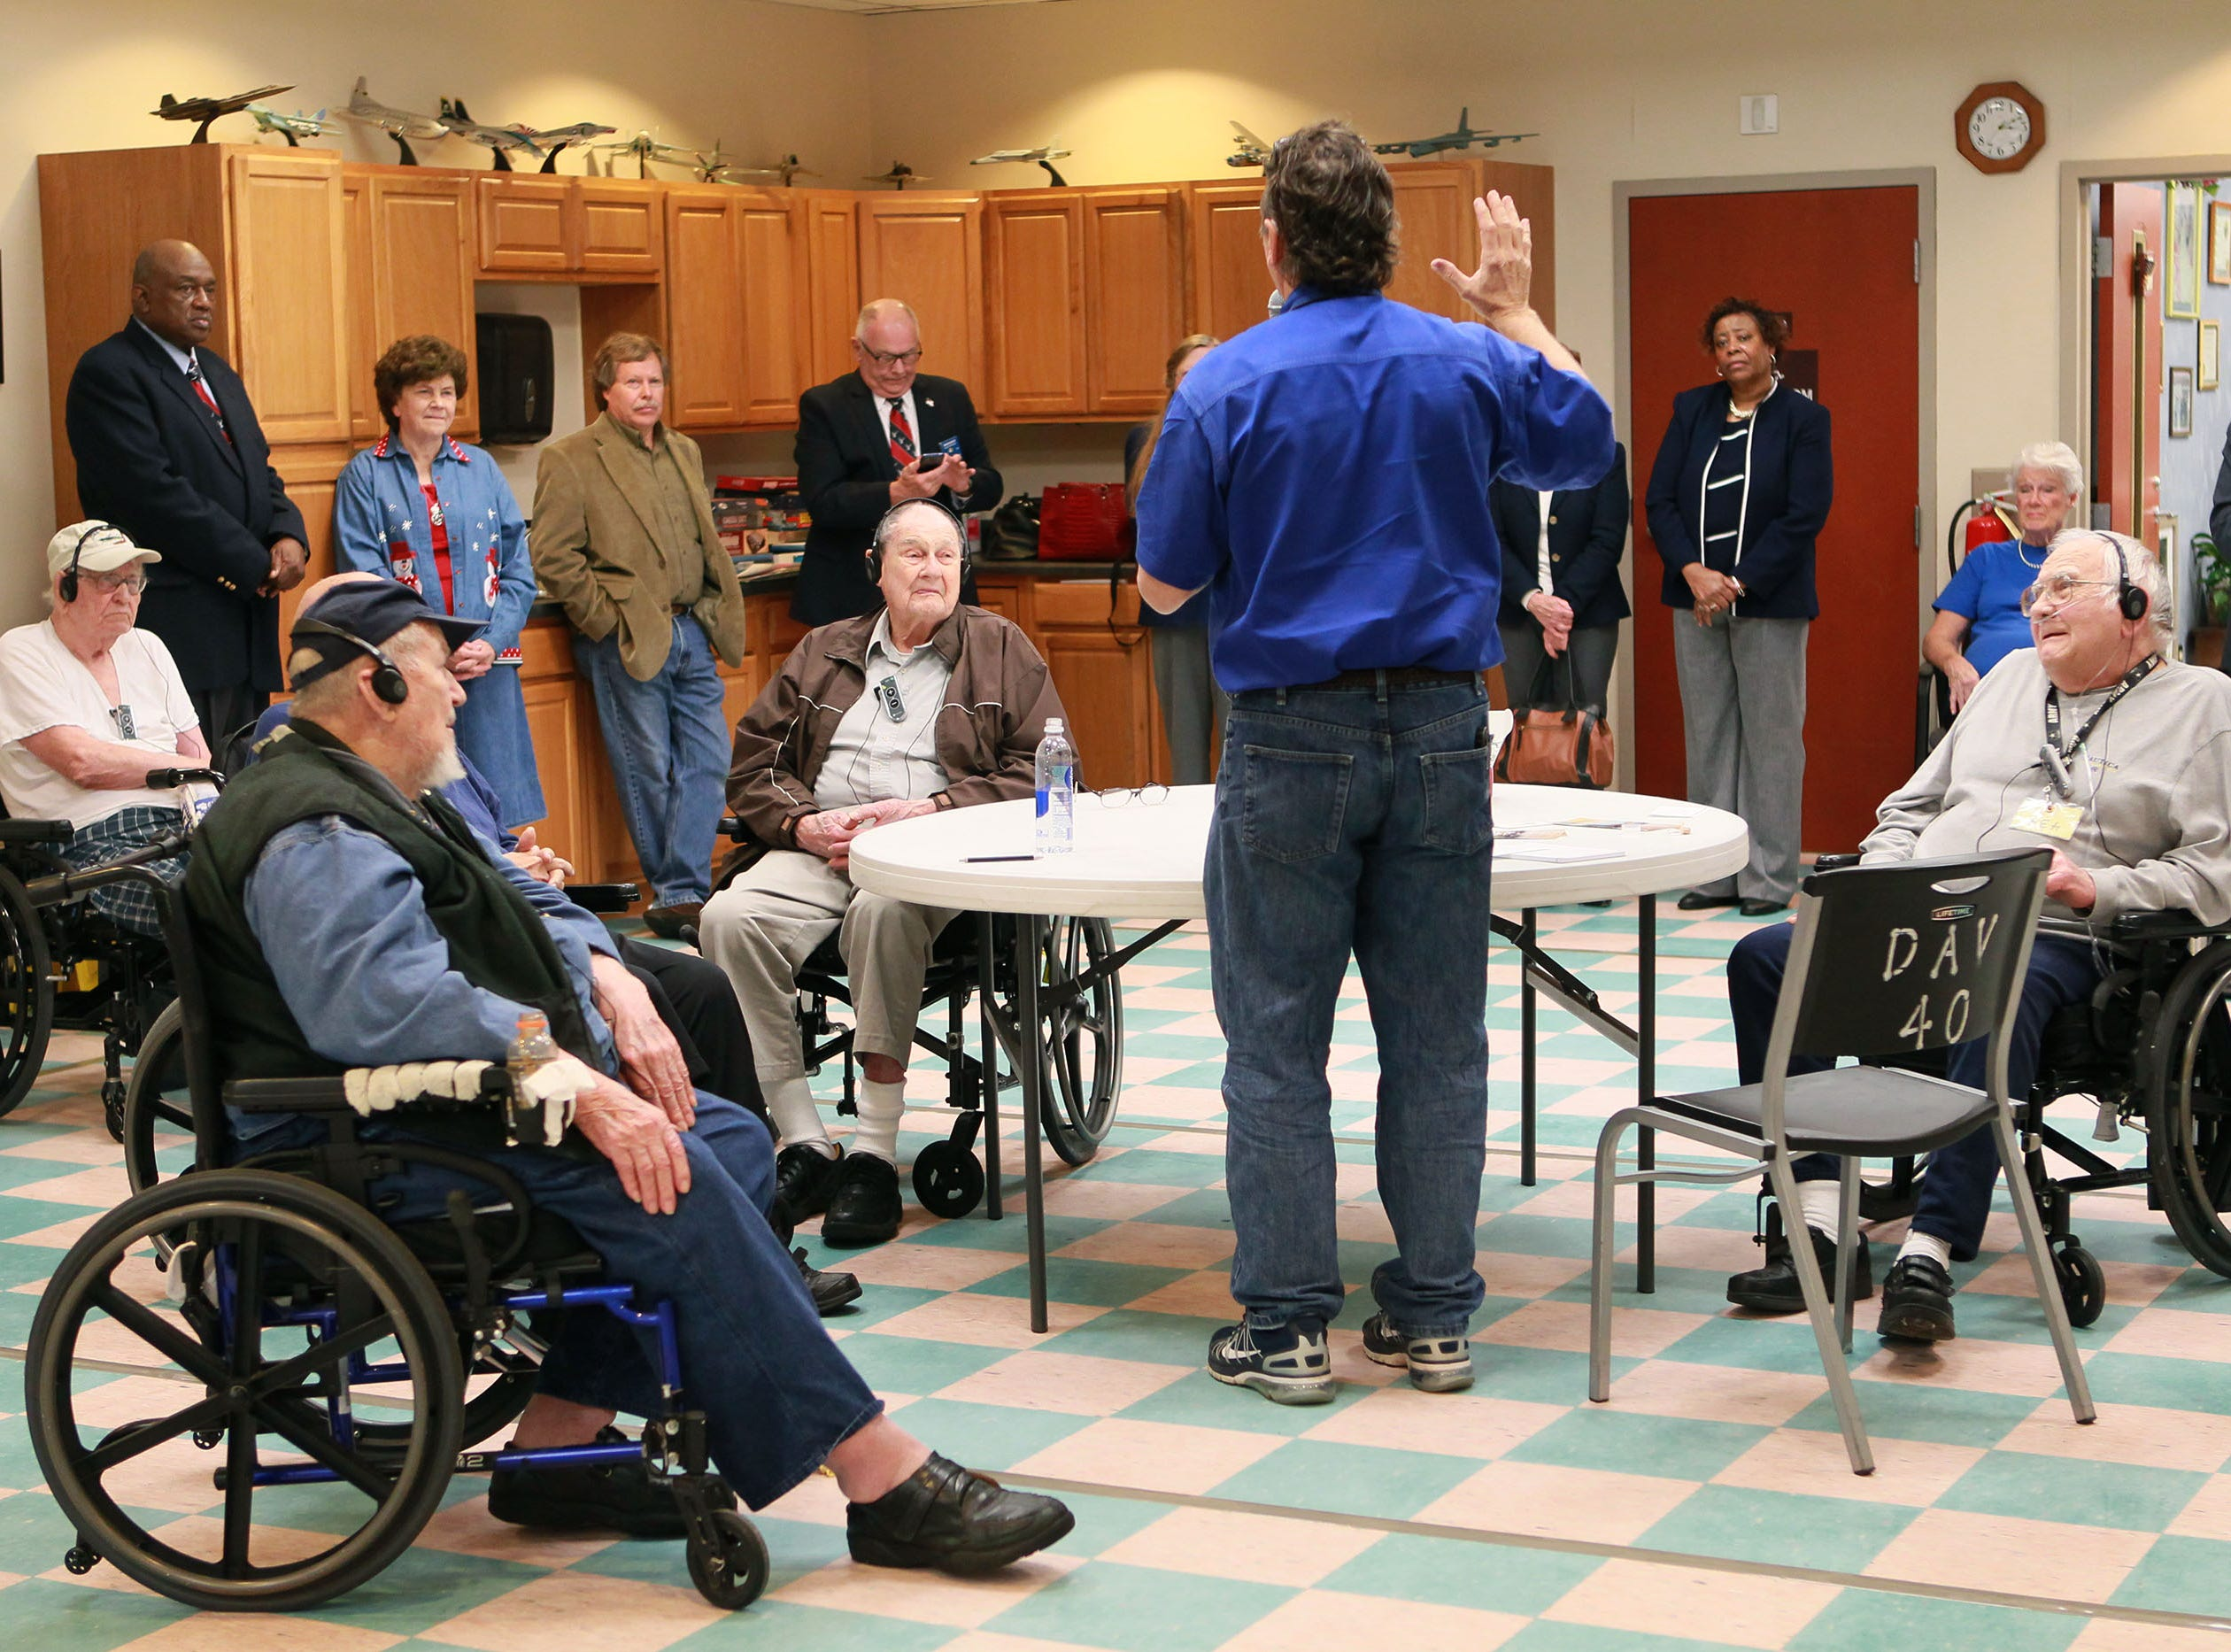 James Stowell (middle) talks to veterans about hearing better with the Hearing Loop Project during a presentation at Richard Campbell Veterans Nursing Home in Anderson in 2015.